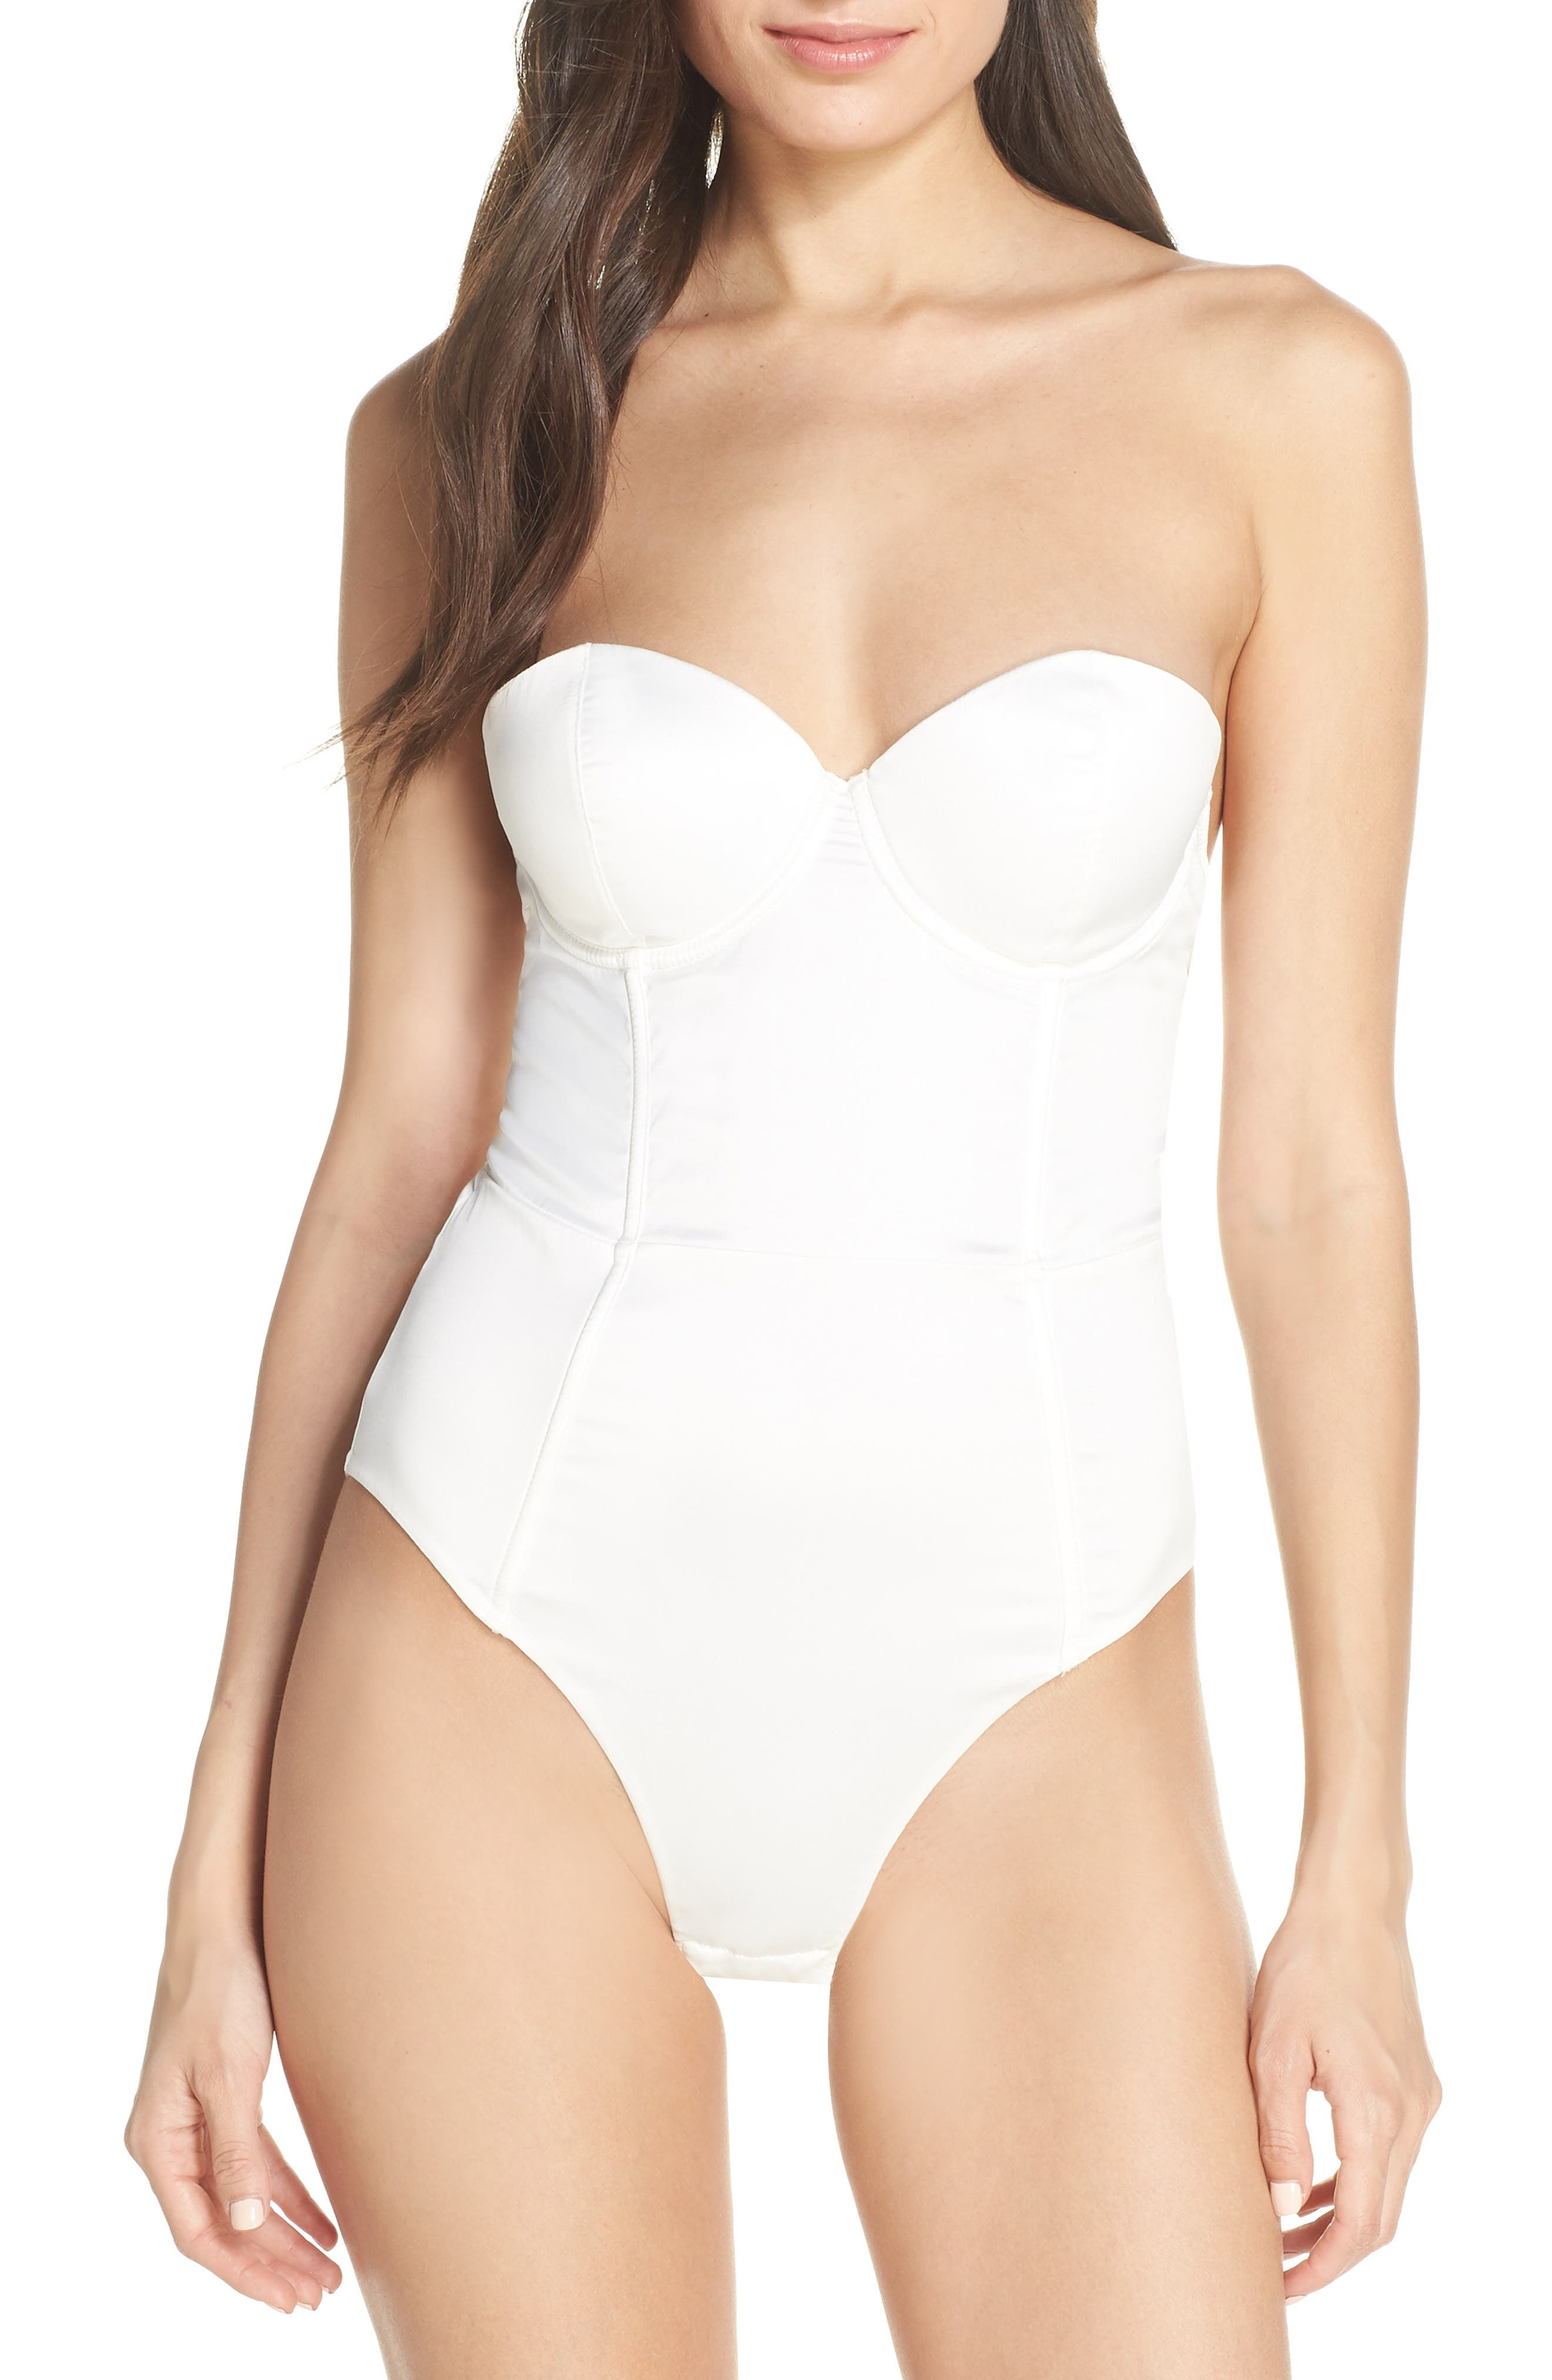 HOMEBODII, Brooklyn Satin Bodysuit, Main thumbnail 1, color, WHITE